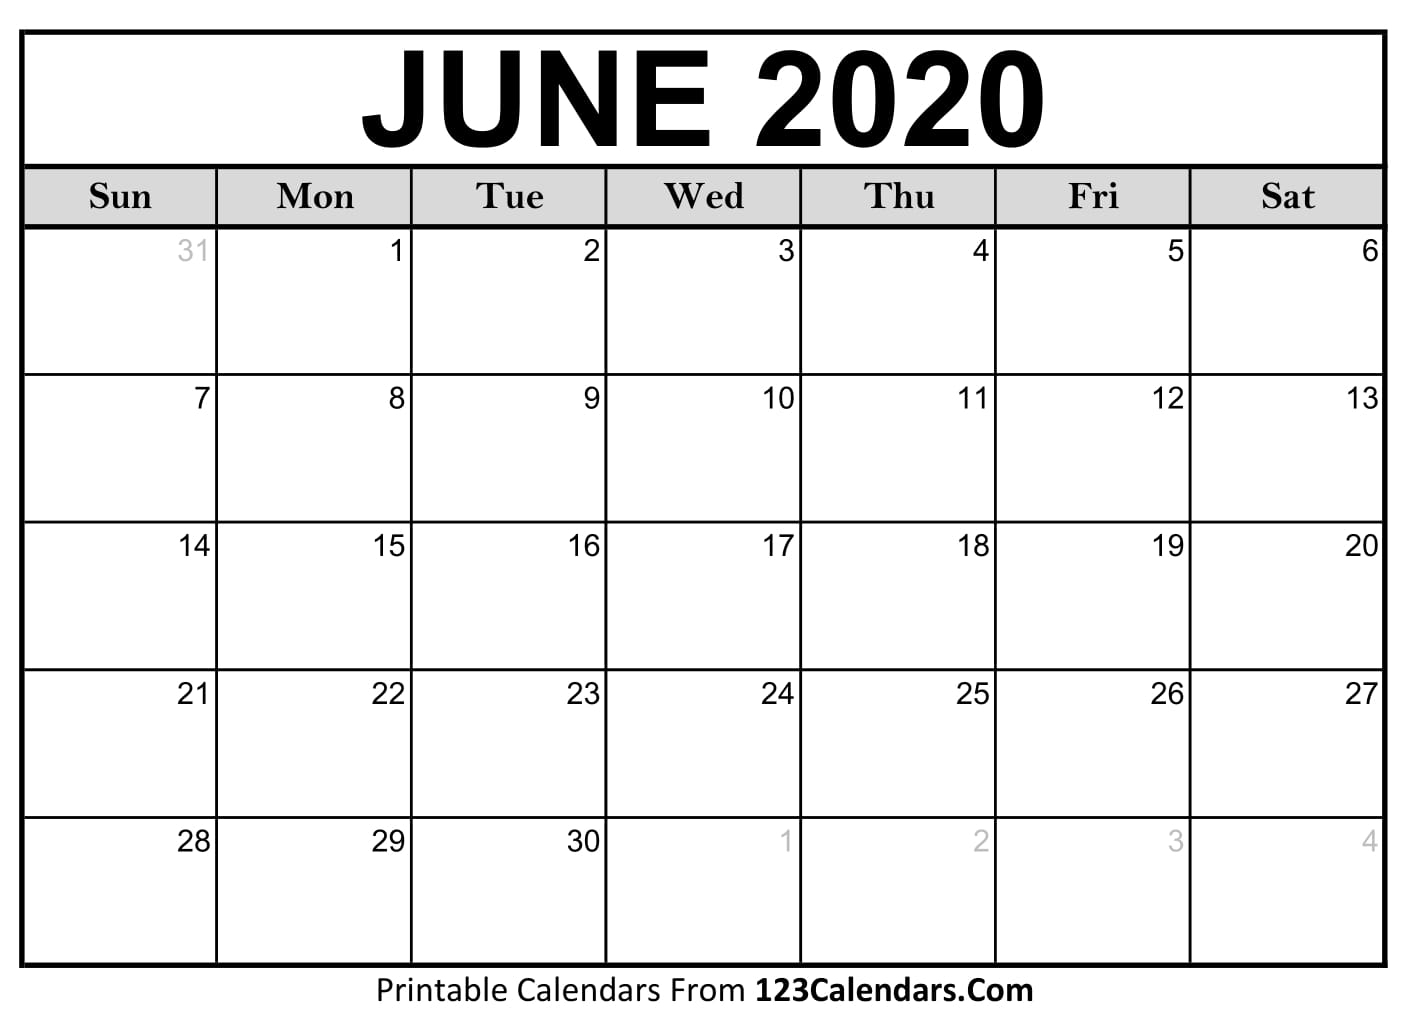 June 2020 Printable Calendar | 123Calendars regarding 2020 Calander To Write On